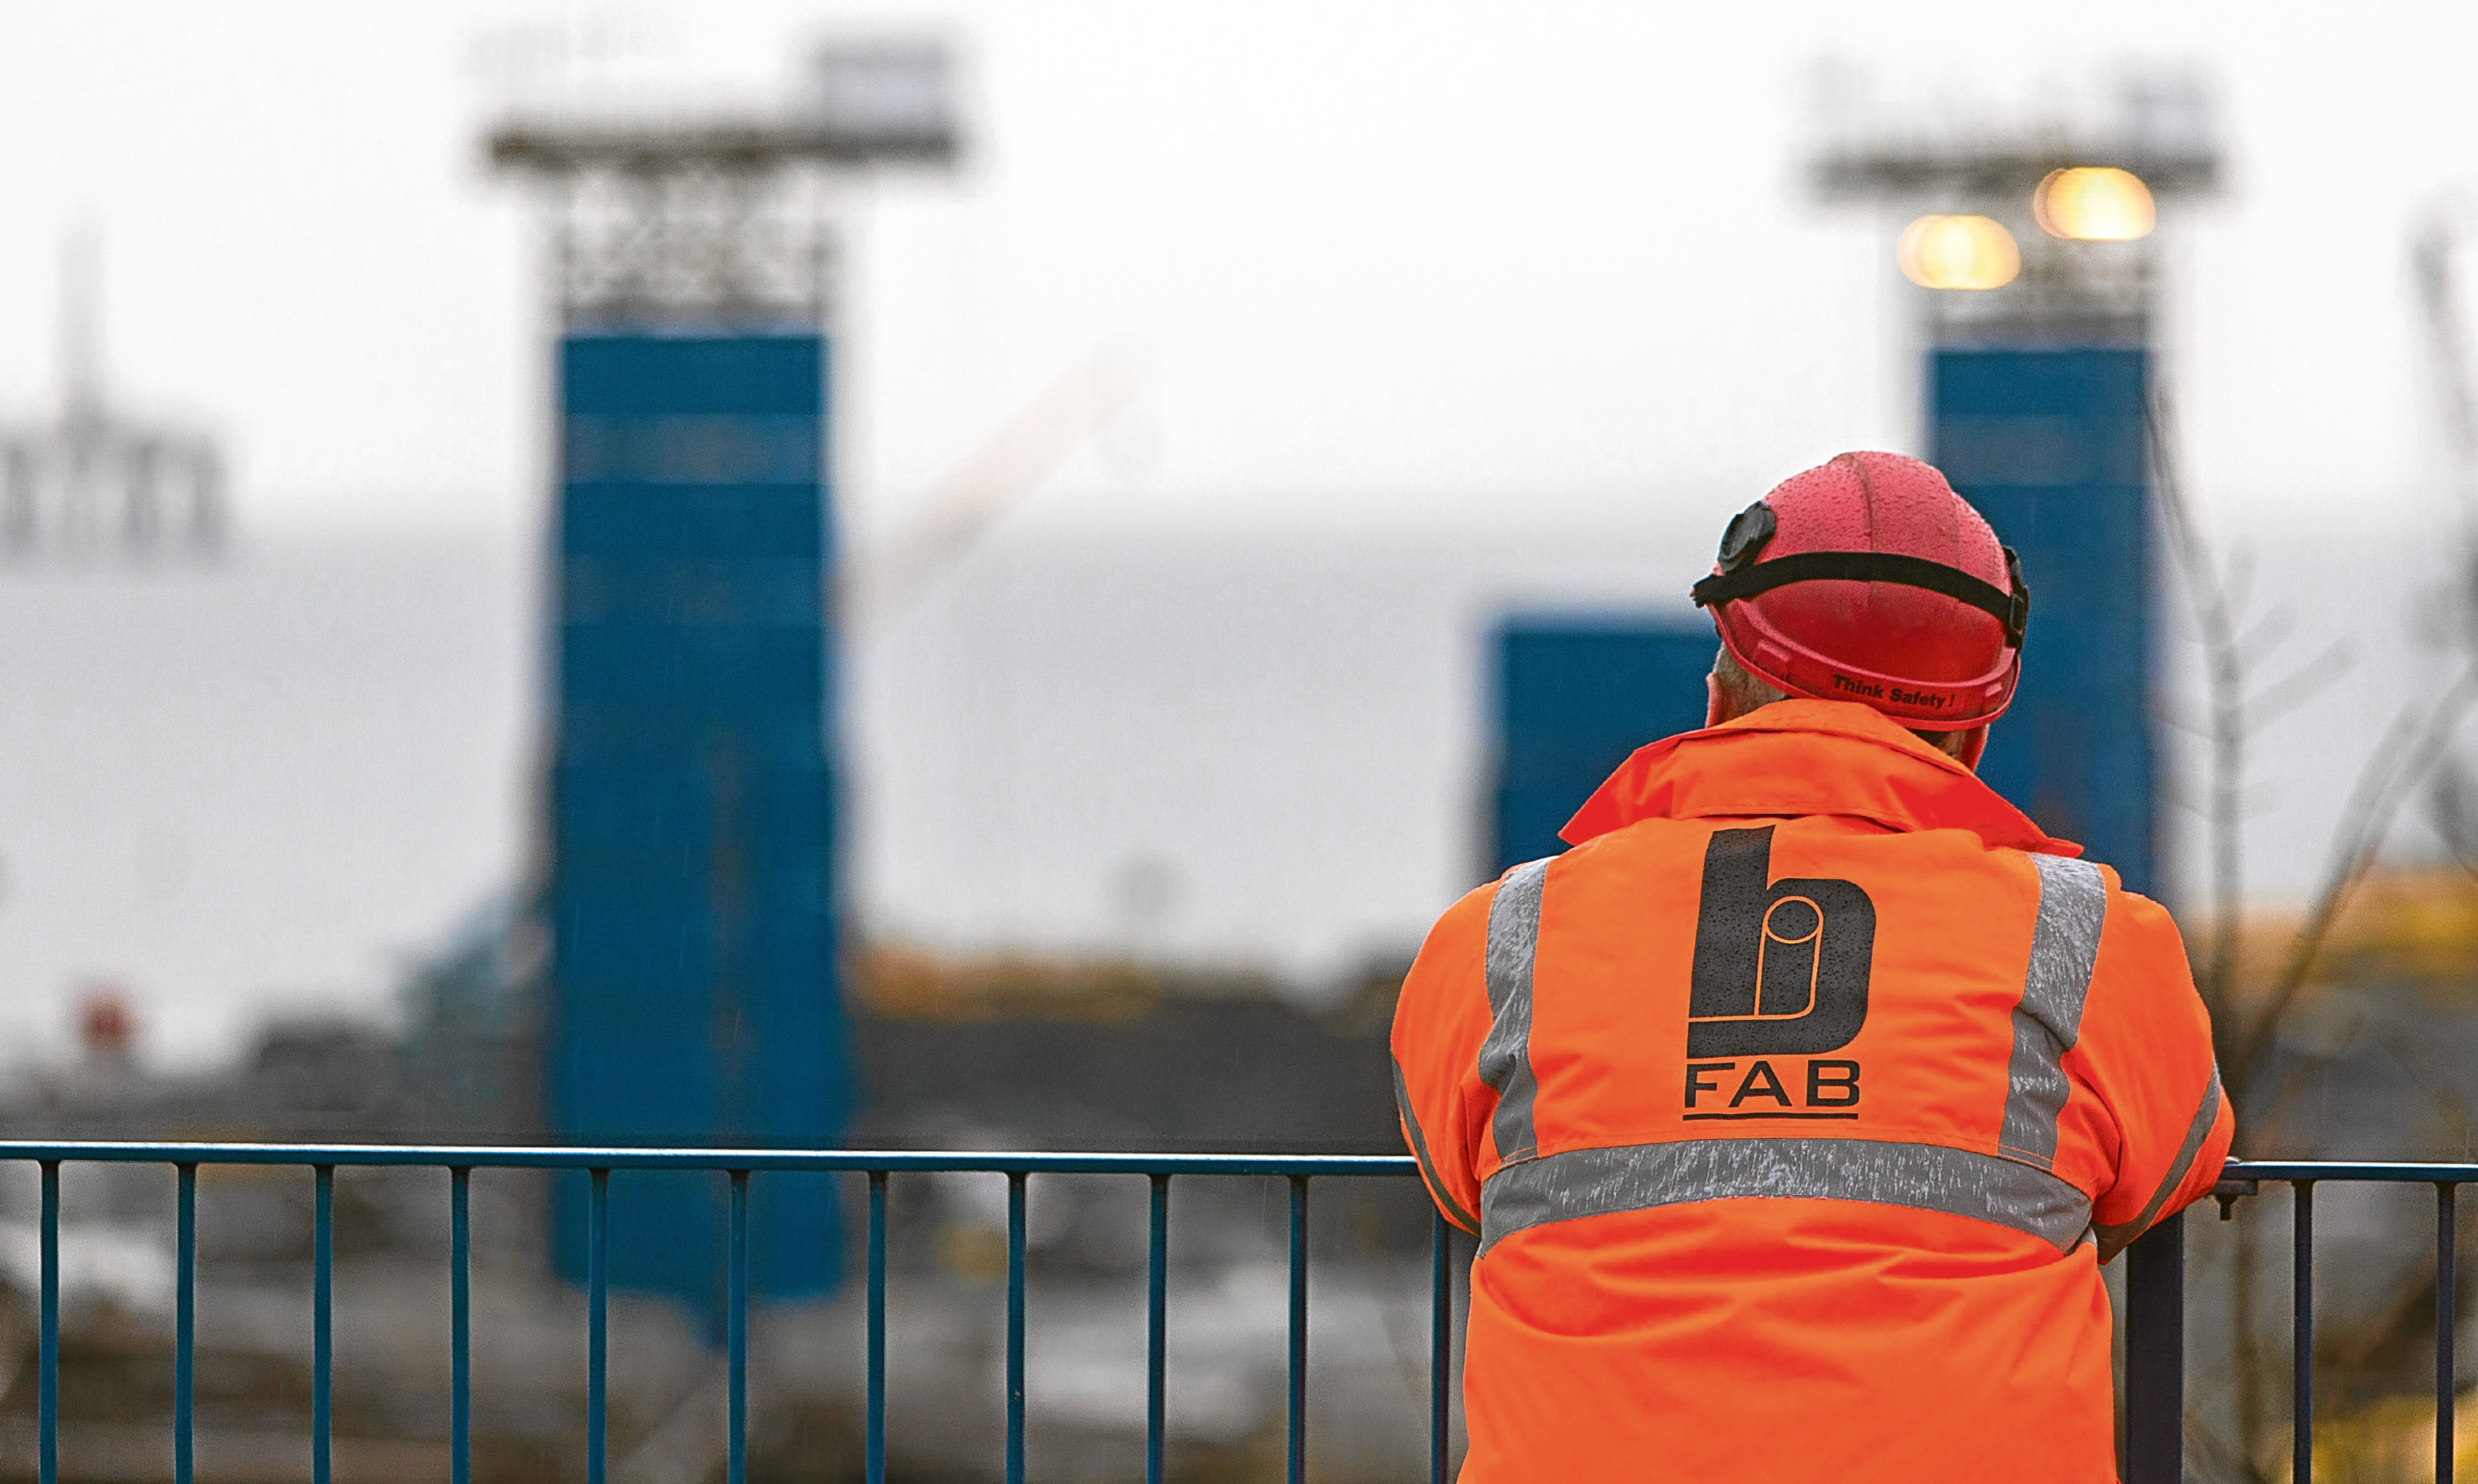 BiFab came close to collapse in November